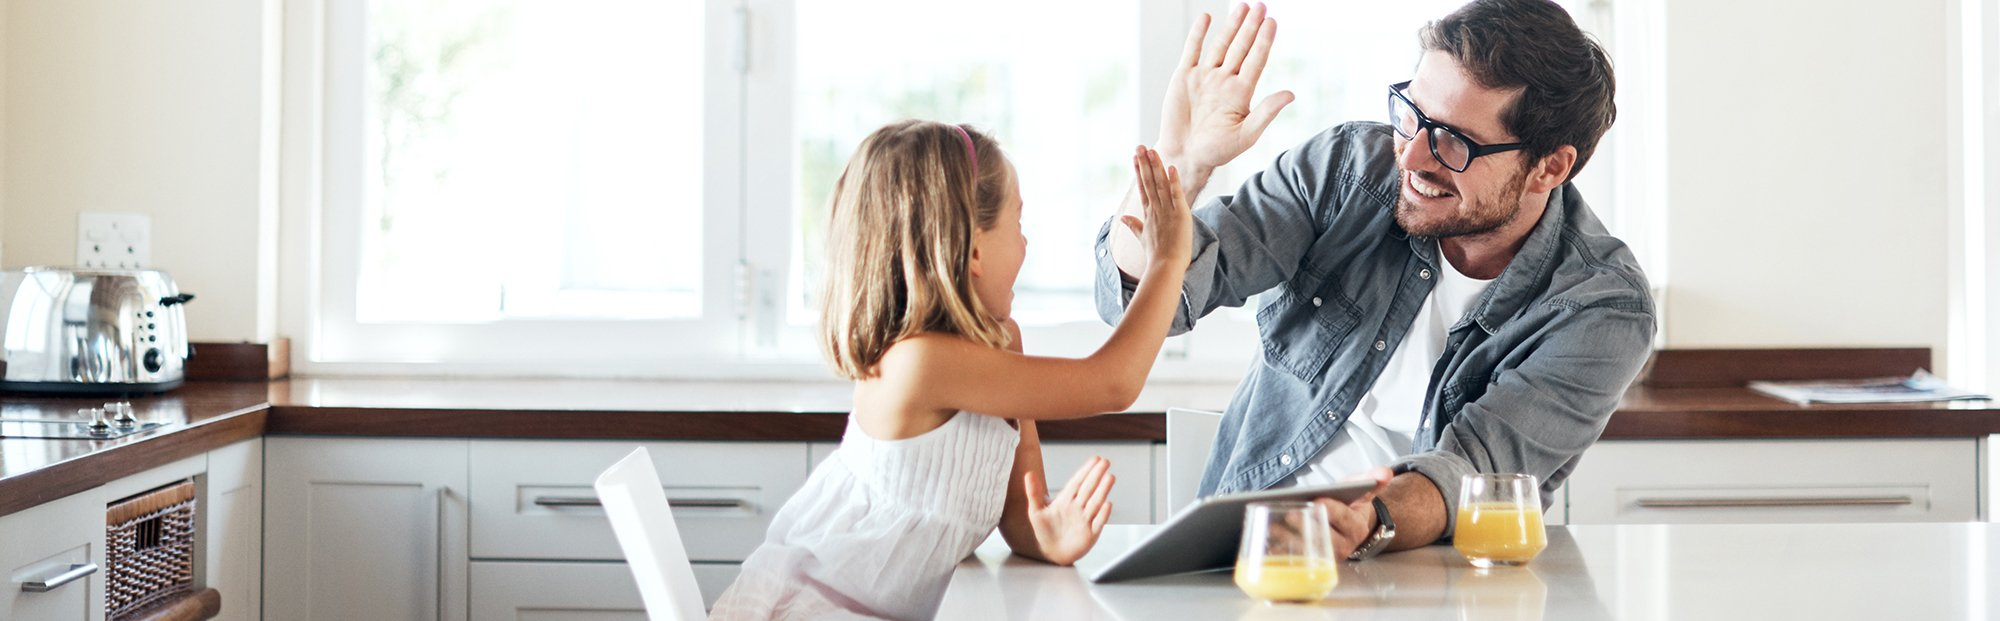 Father and daughter high five